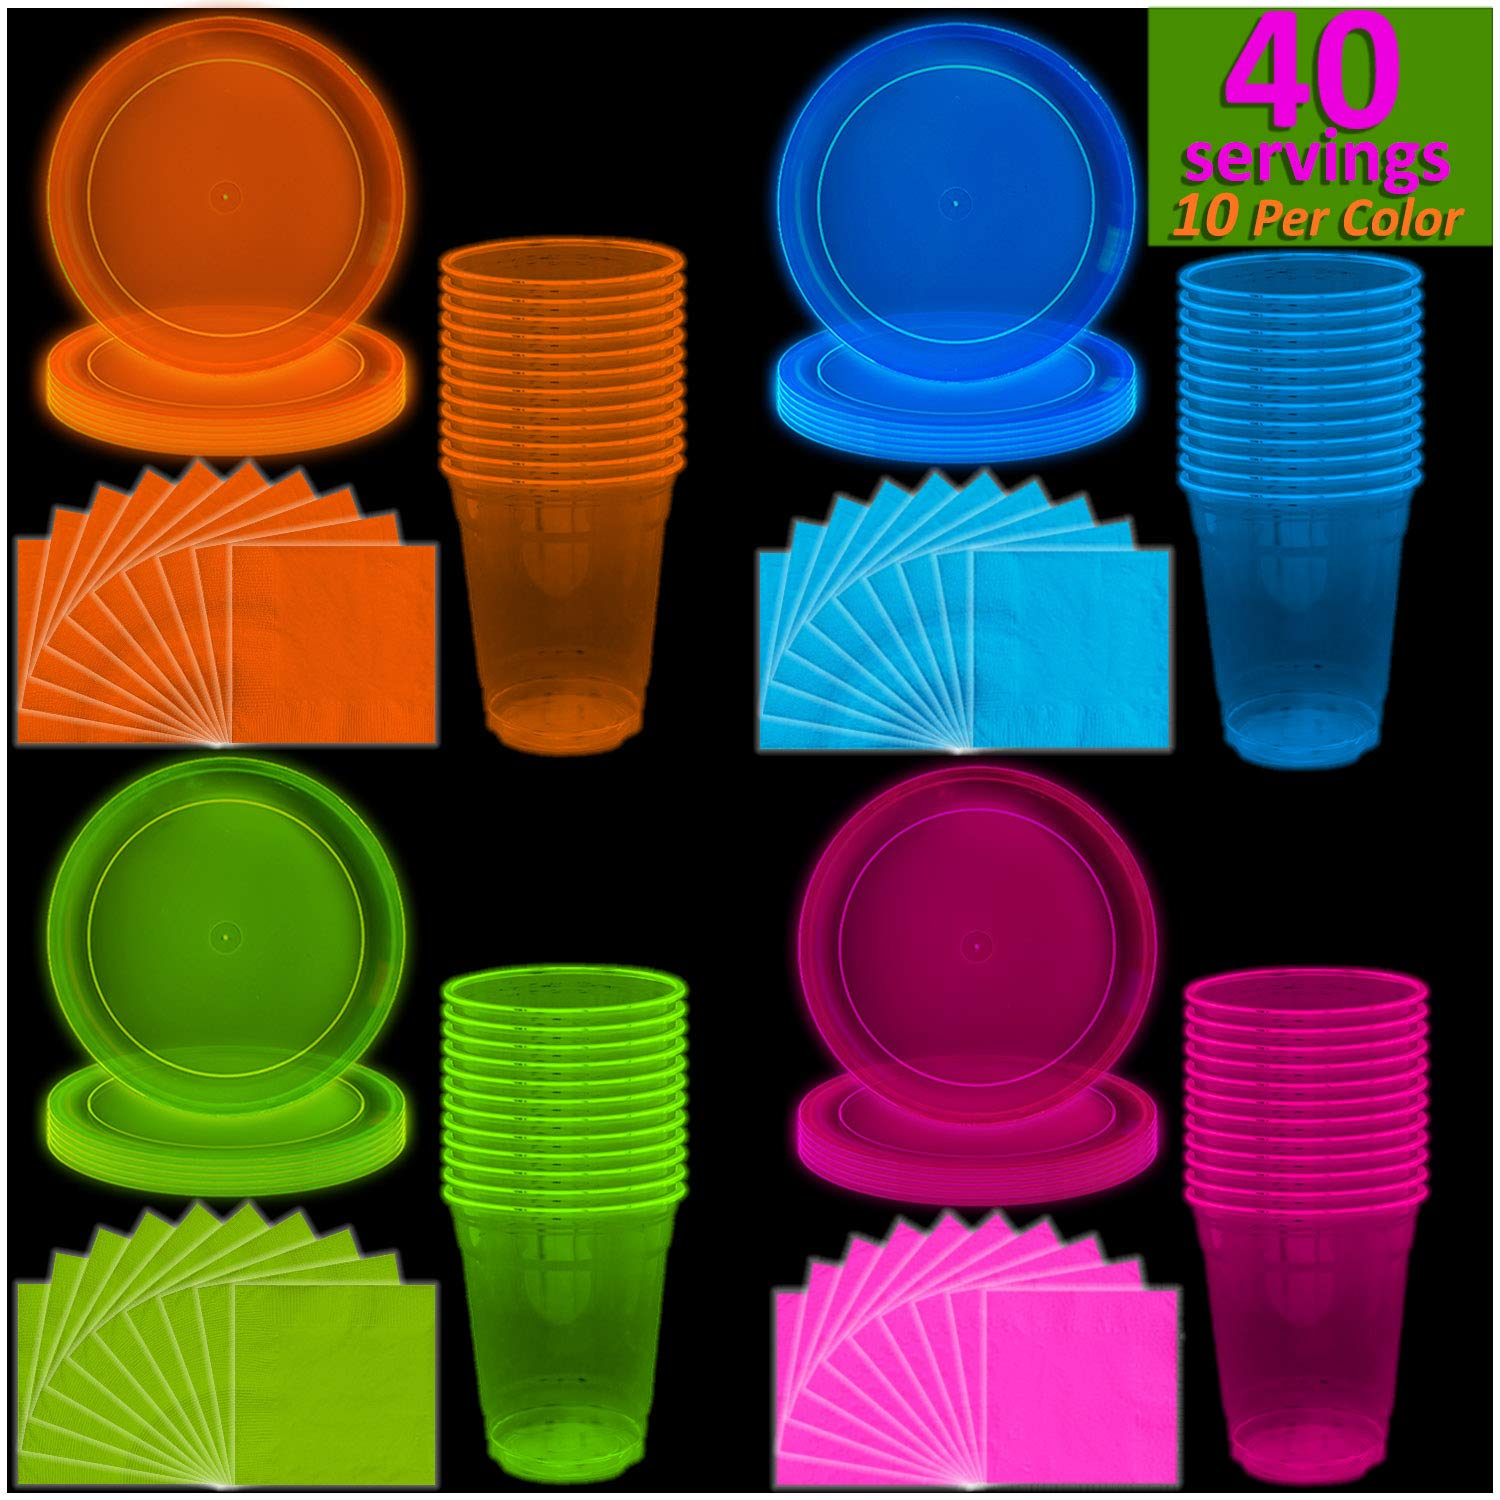 Neon Plates (9''), Cups (12 oz) & Napkins - 40 Servings, 4 colors - Black Light Party Supplies, Glow-in-the-Dark with UV Light - for Birthdays, 80s Theme, Fiesta, clubs by HeroFiber